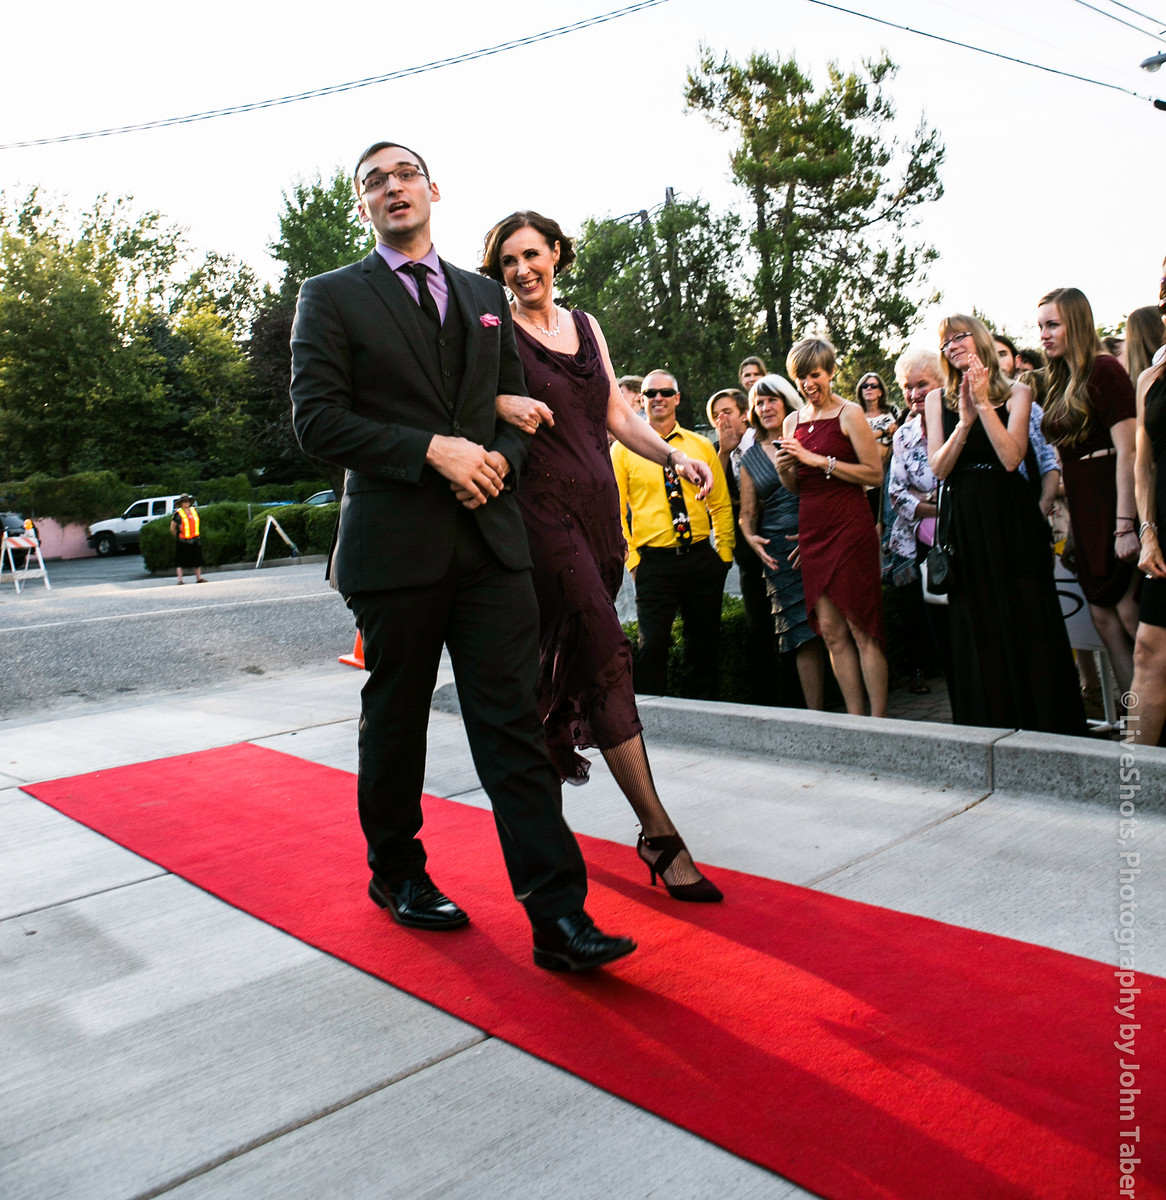 Walk by adoring crowds on your way in to the show. Photo by John Taber